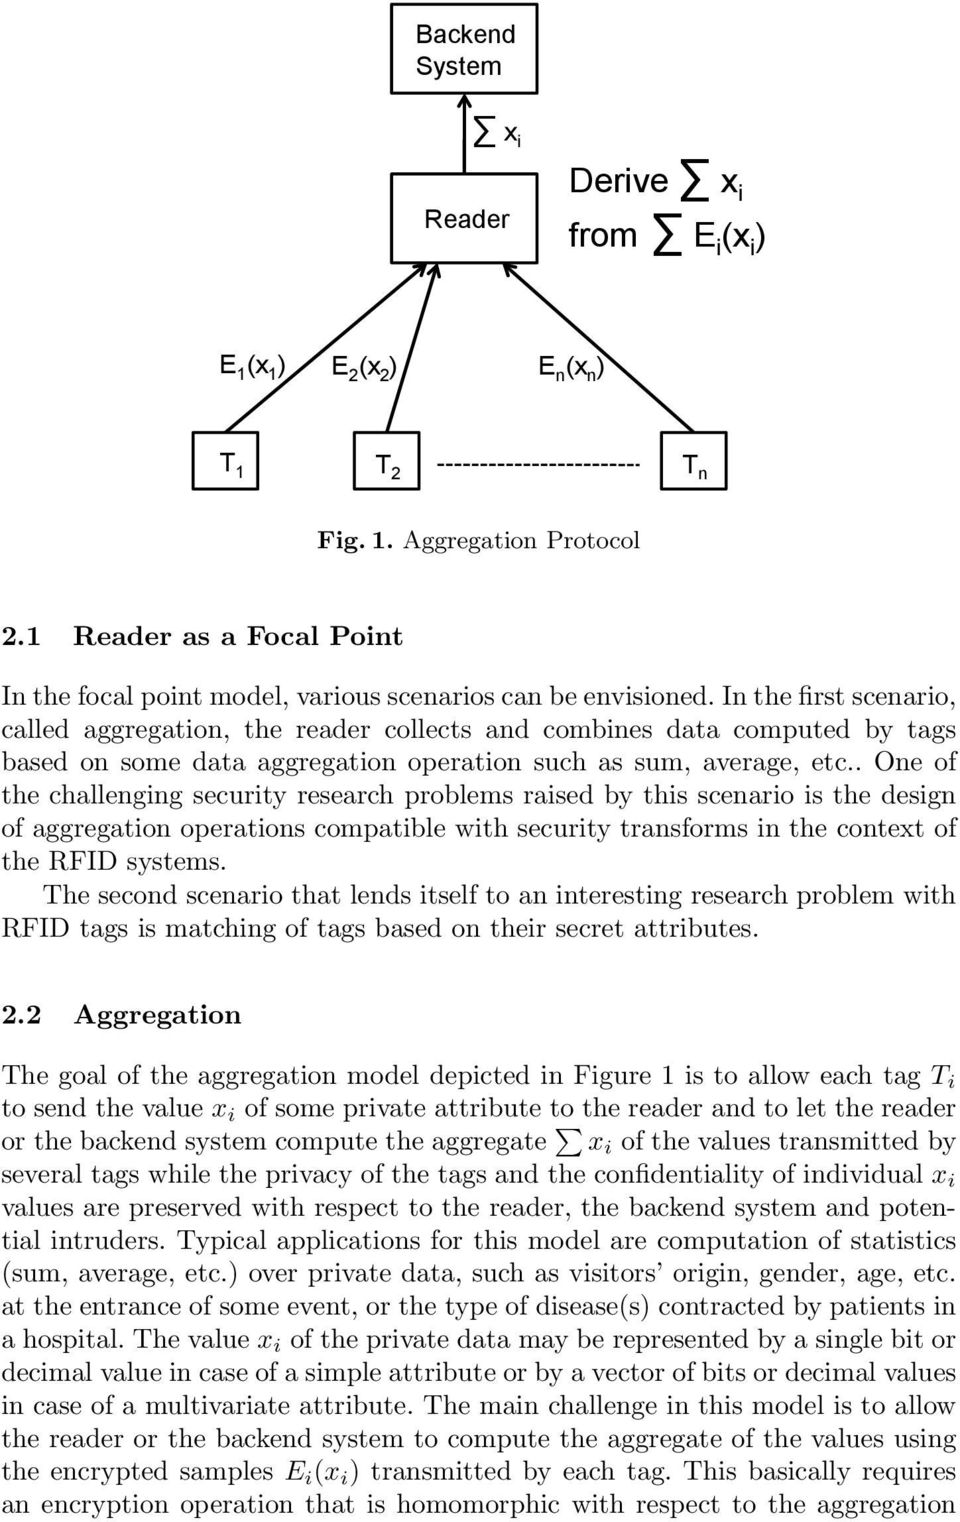 In the first scenario, called aggregation, the reader collects and combines data computed by tags based on some data aggregation operation such as sum, average, etc.